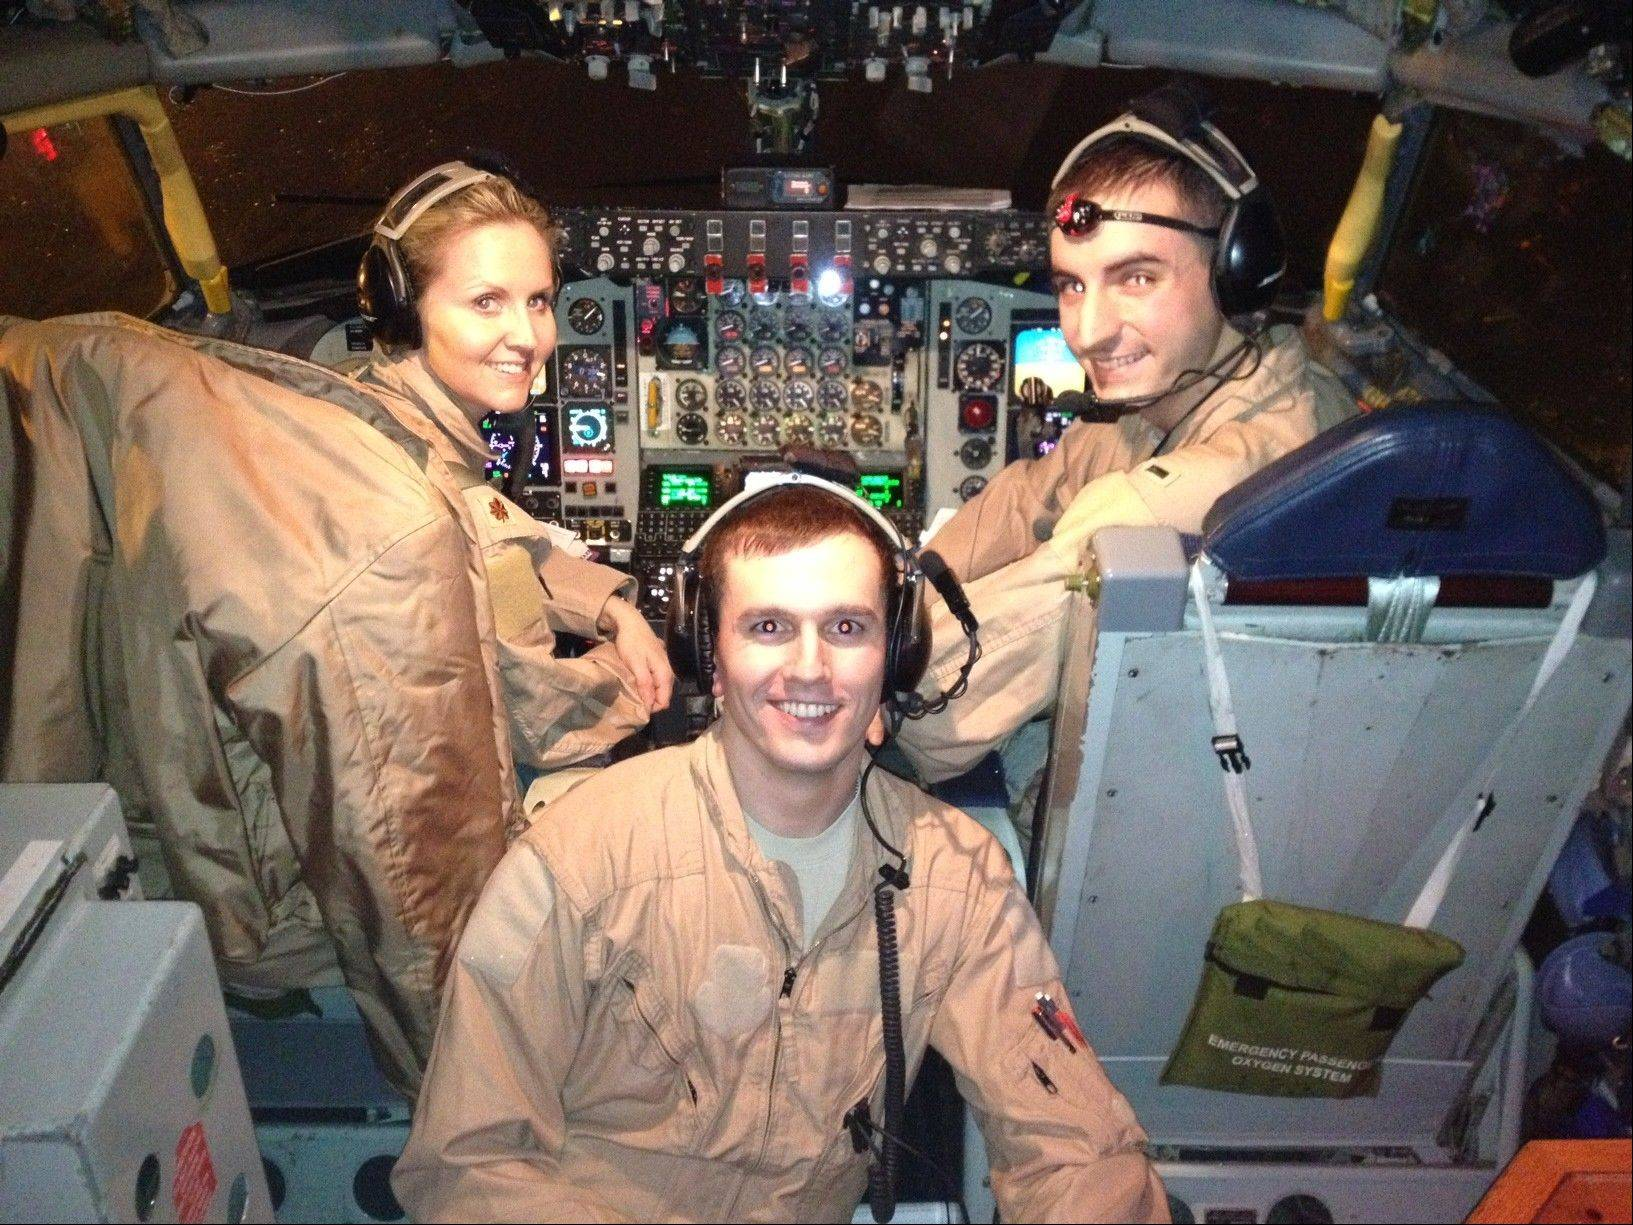 U.S. Air Force Maj. Gina Stramaglio of the 351st Expeditionary Air Refueling Squadron and her crew, 1st Lt. Paul Paskell, co-pilot, right, and Senior Airman Mike Danilowski, boom operator. On Jan. 27 the team conducted the first U.S. refueling mission in support of French fighter planes battling al-Qaida in Mali.